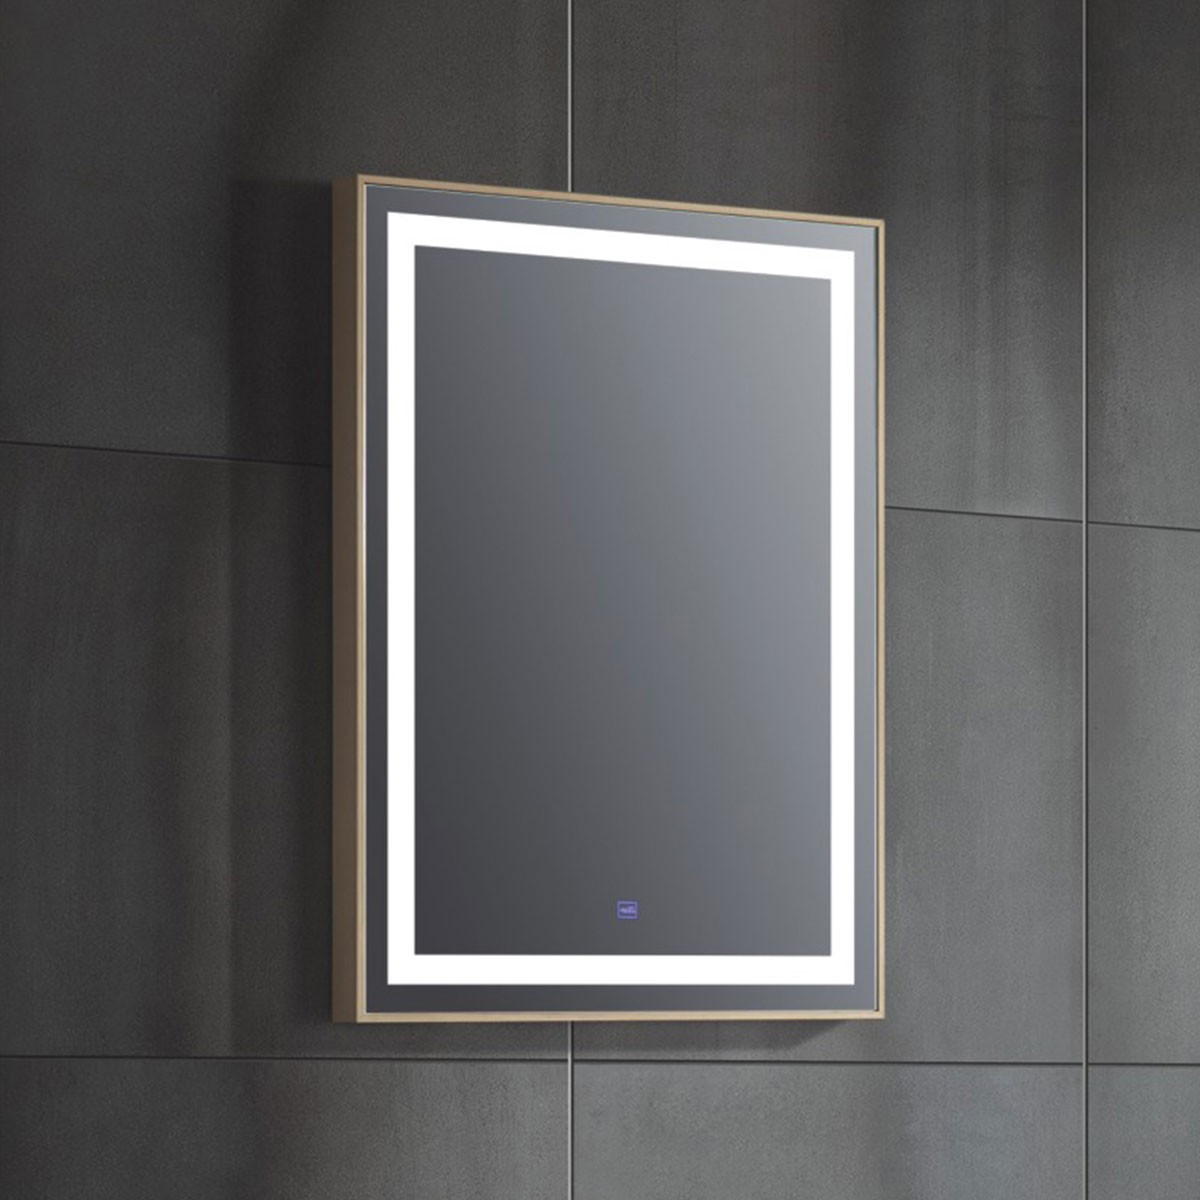 24 x 31 In Vertical LED Bathroom Mirror with Touch Button (FB-G8320-M)